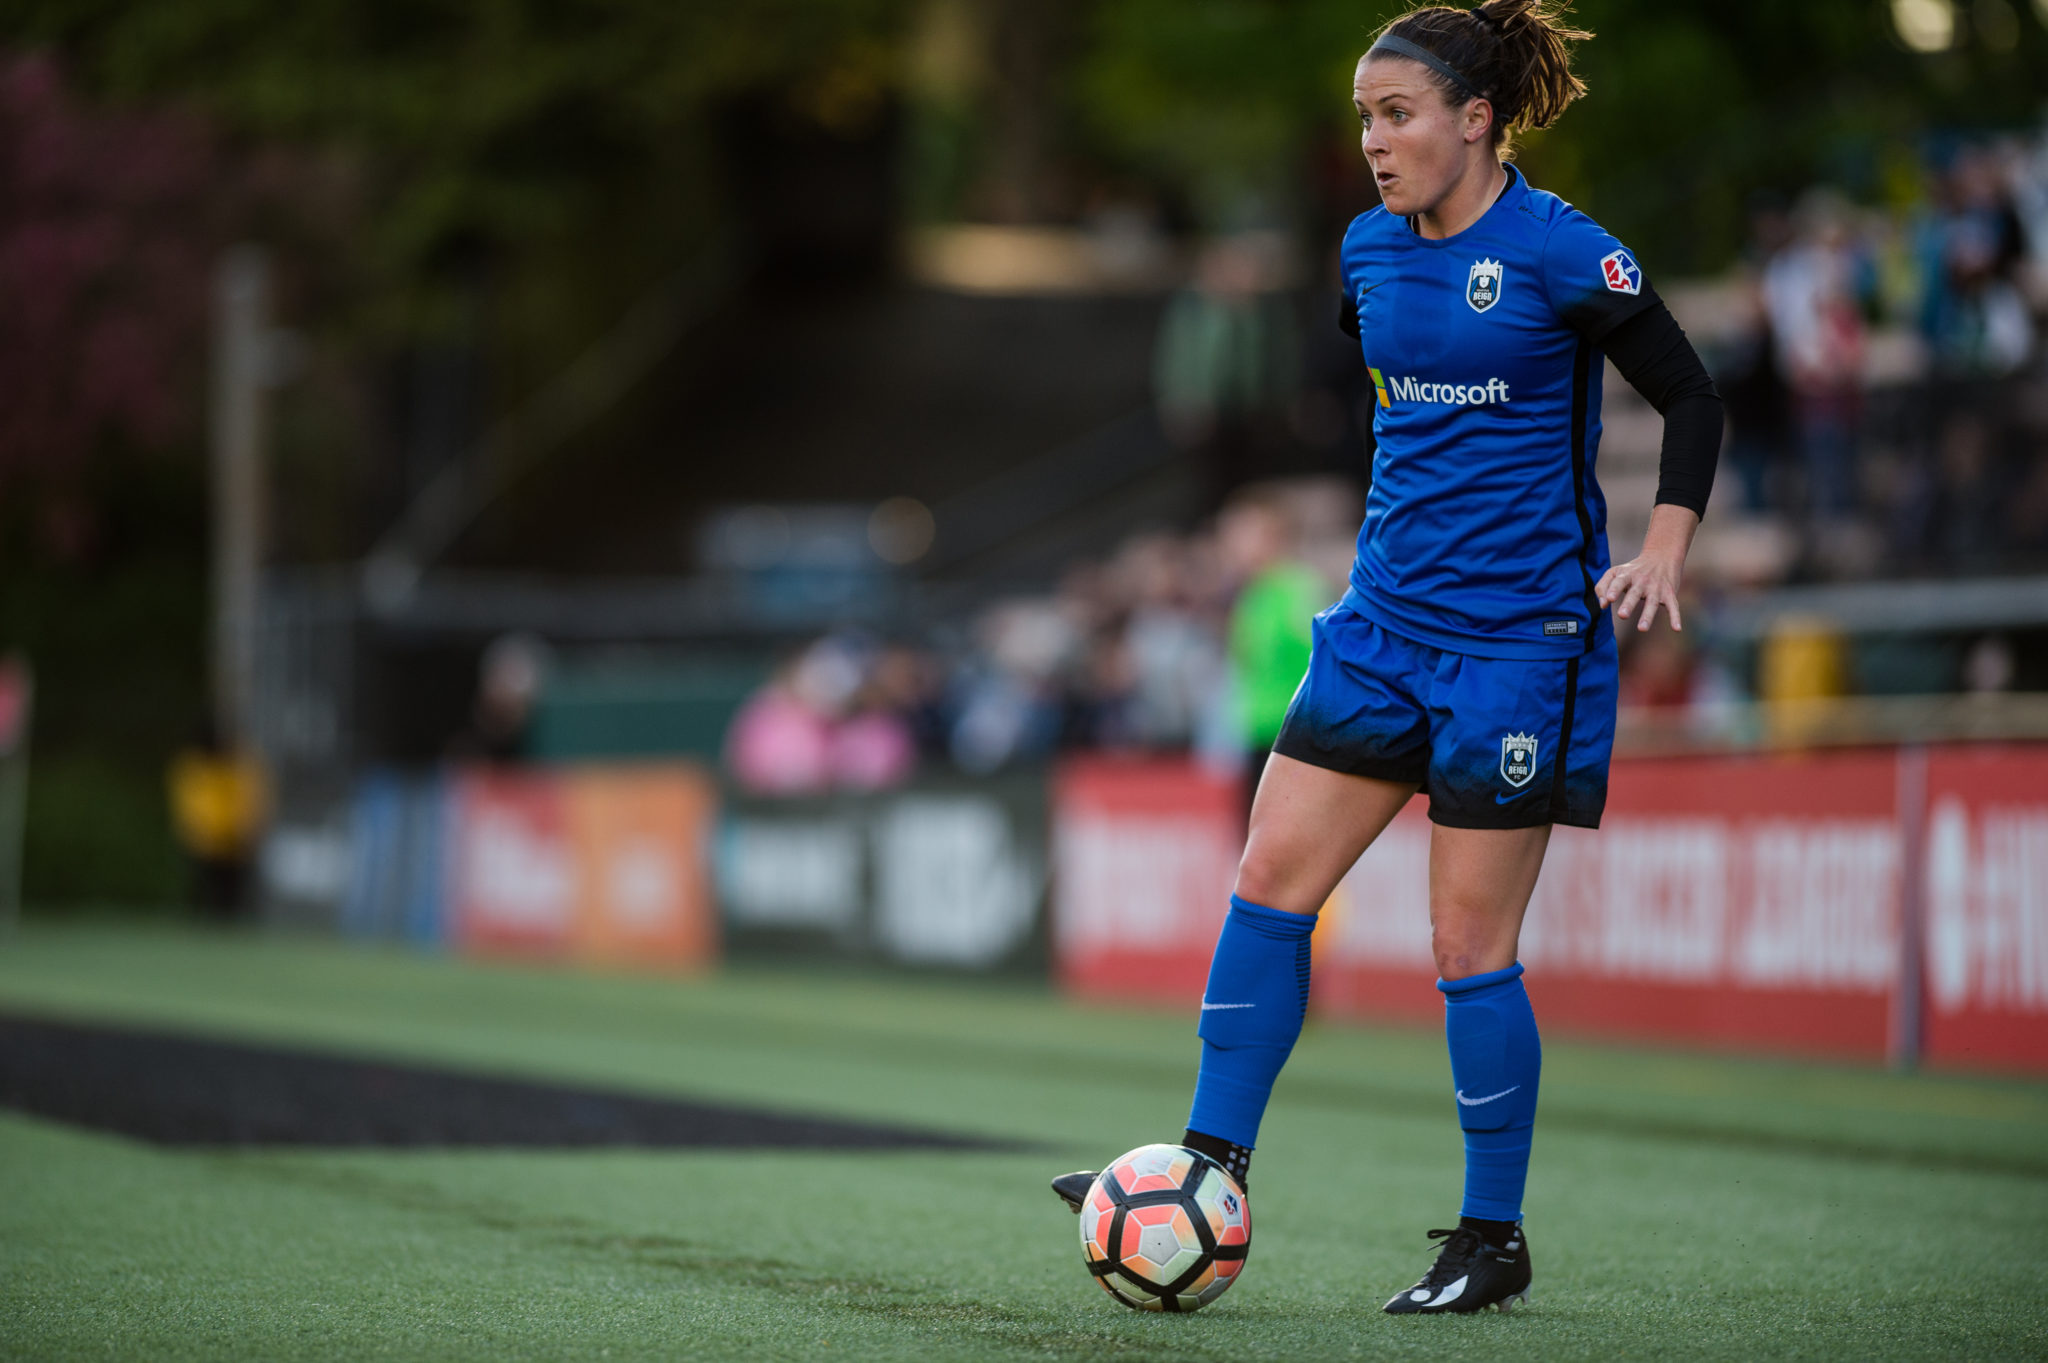 Nairn scored the first of six goals last weekend to help Seattle in their rout of the Washing Spirit by a score of 6-2 (Photo Credit: Jane Gershovich)